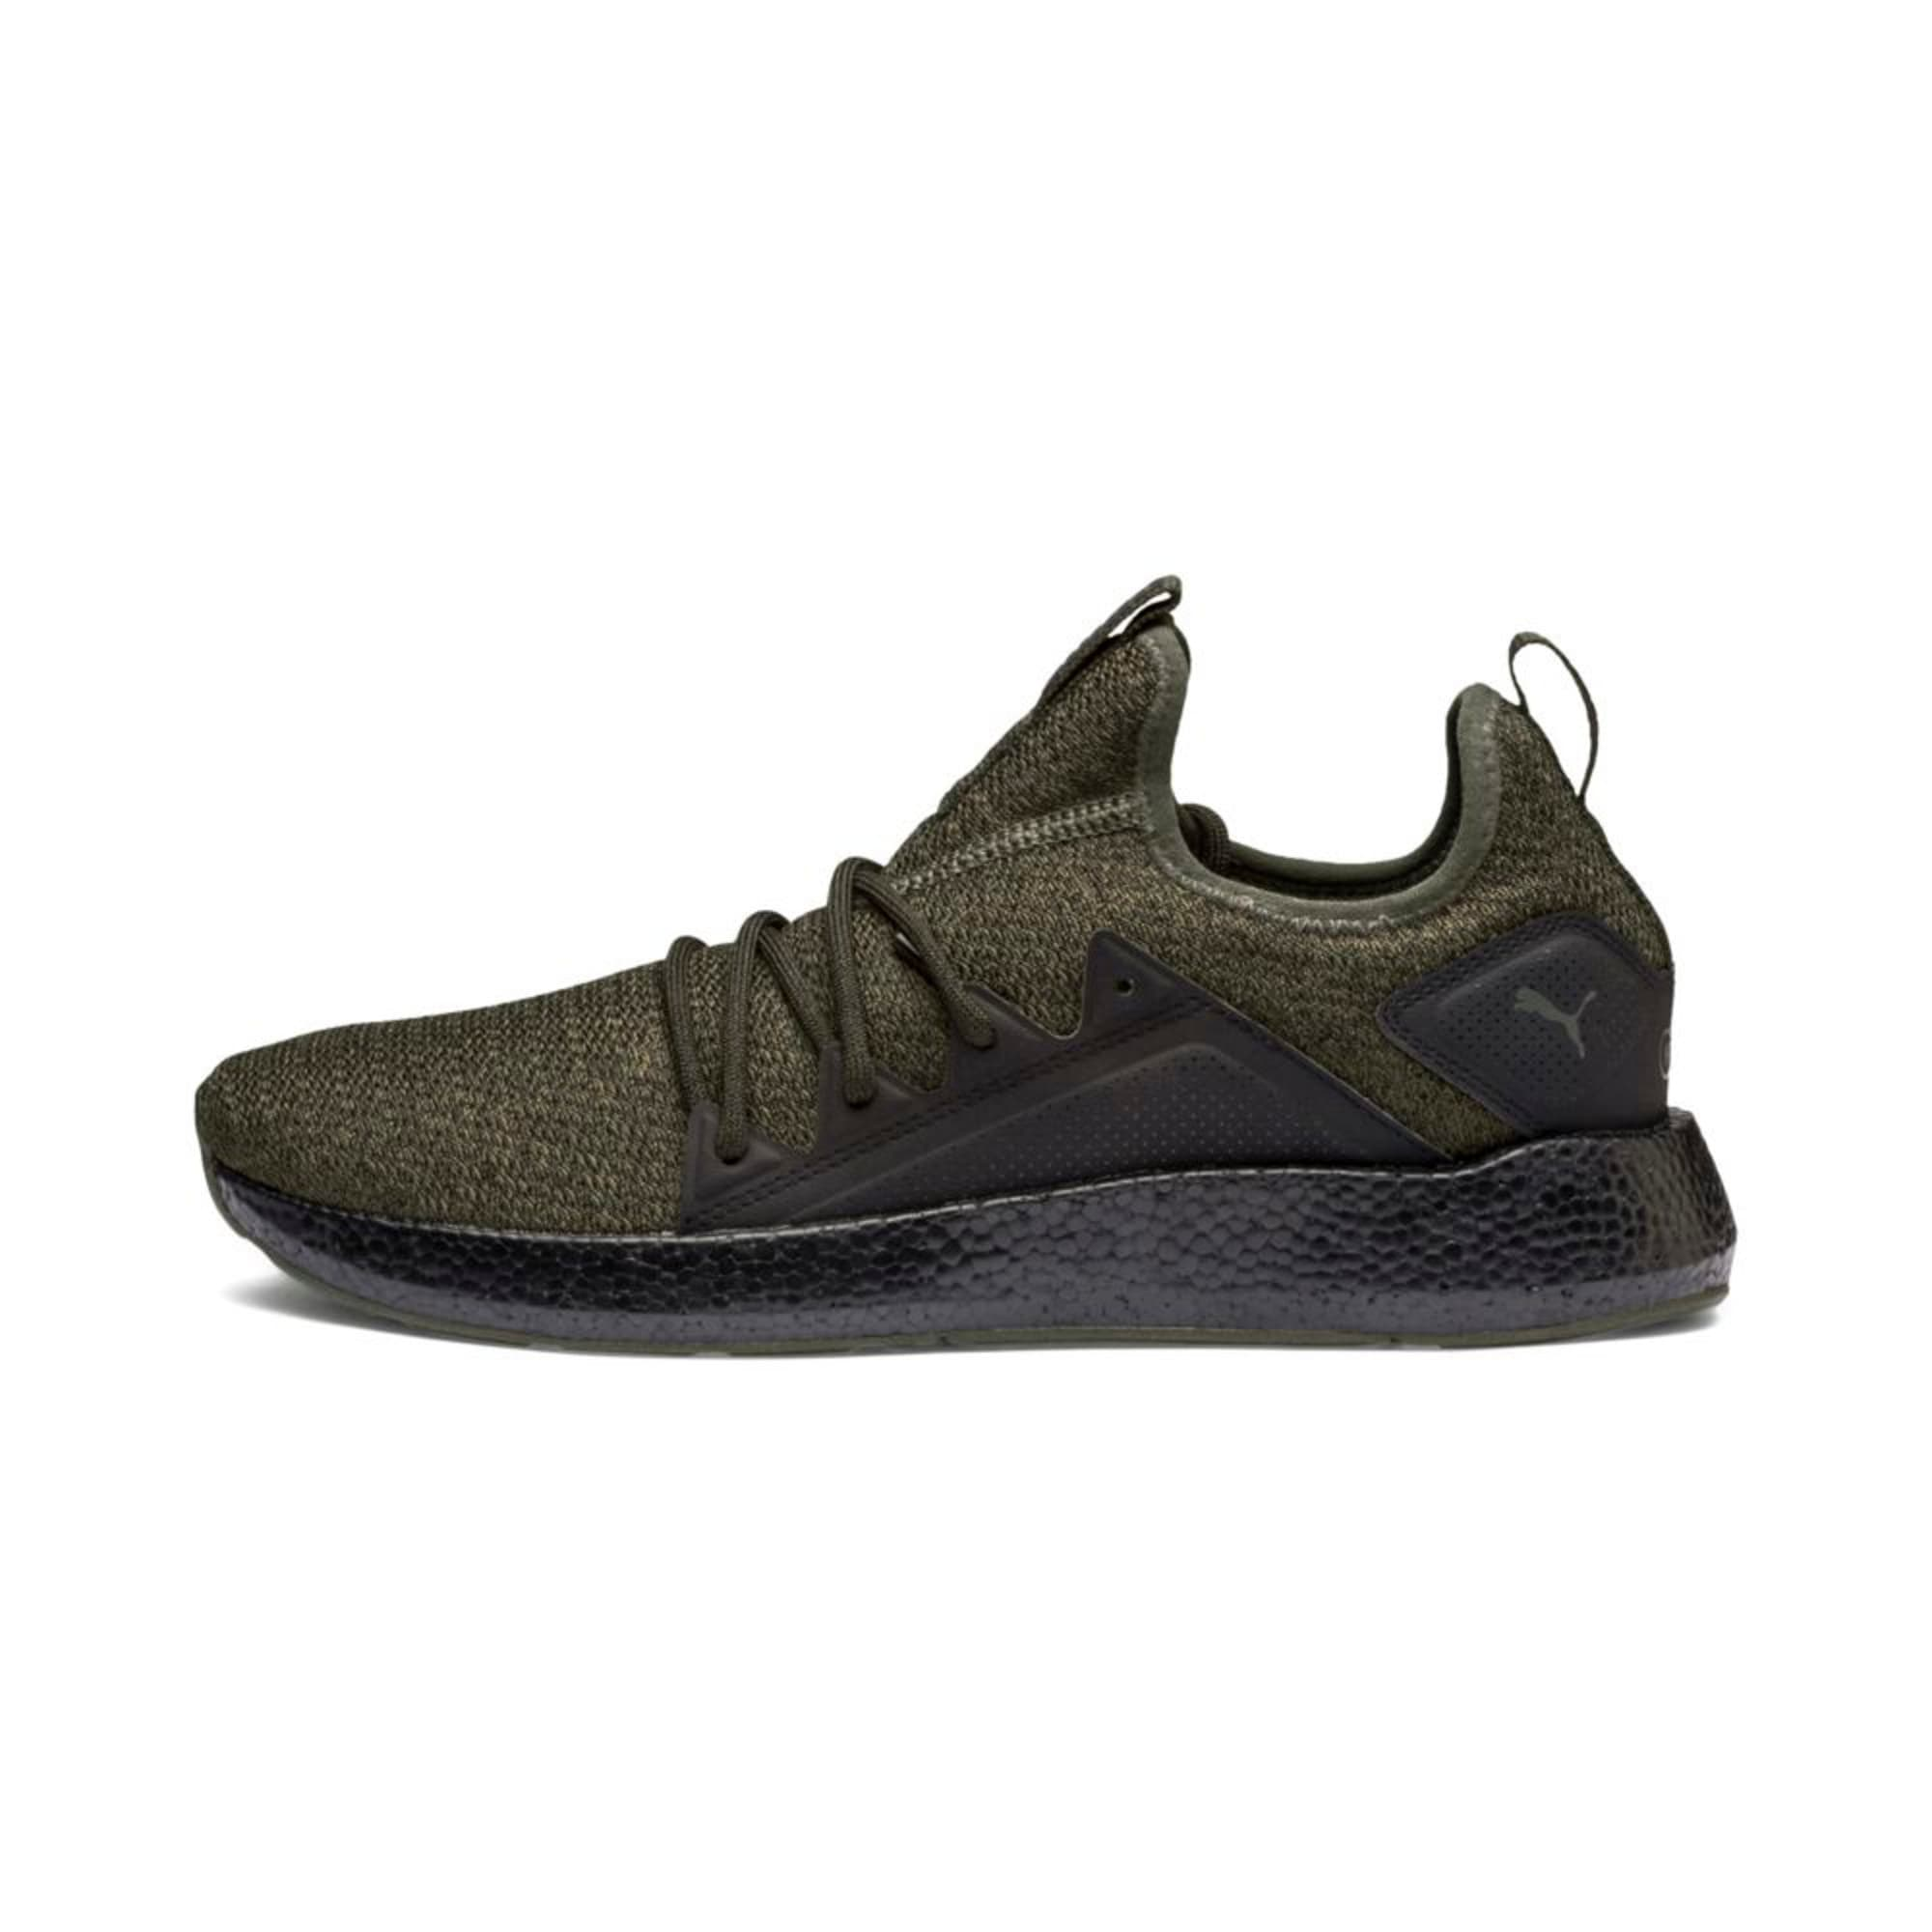 Thumbnail 1 of NRGY Neko Knit Men's Running Shoes, Forest Night-Puma Black, medium-IND